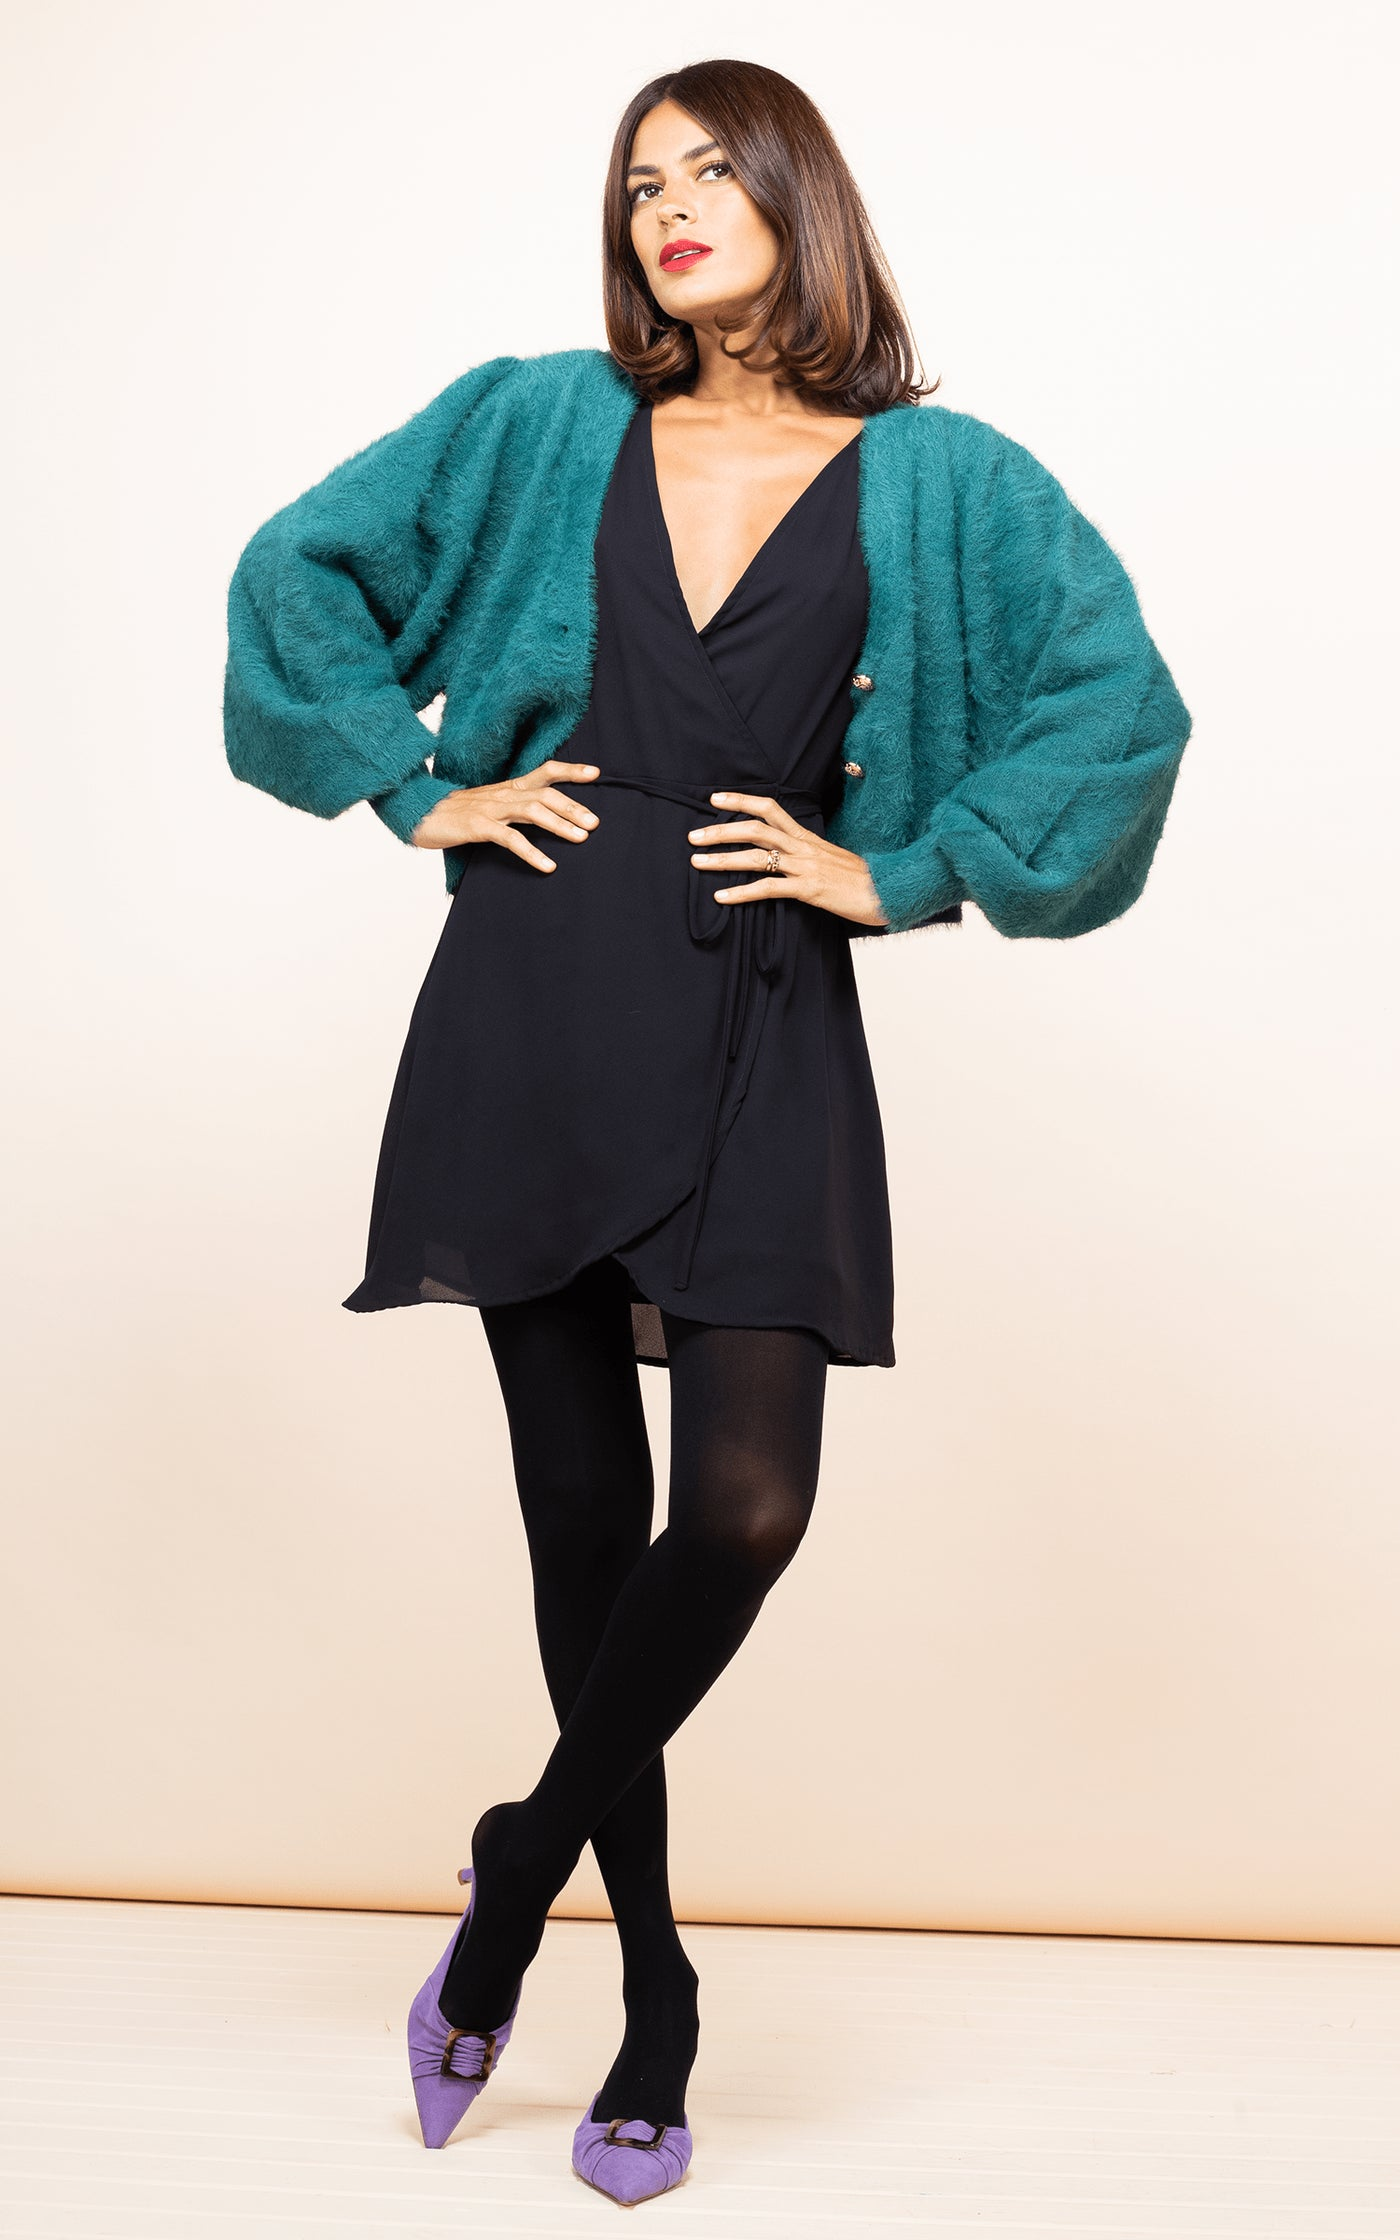 Dancing Leopard model faces forwards wearing Teagan Mini Dress in Black with green cardigan